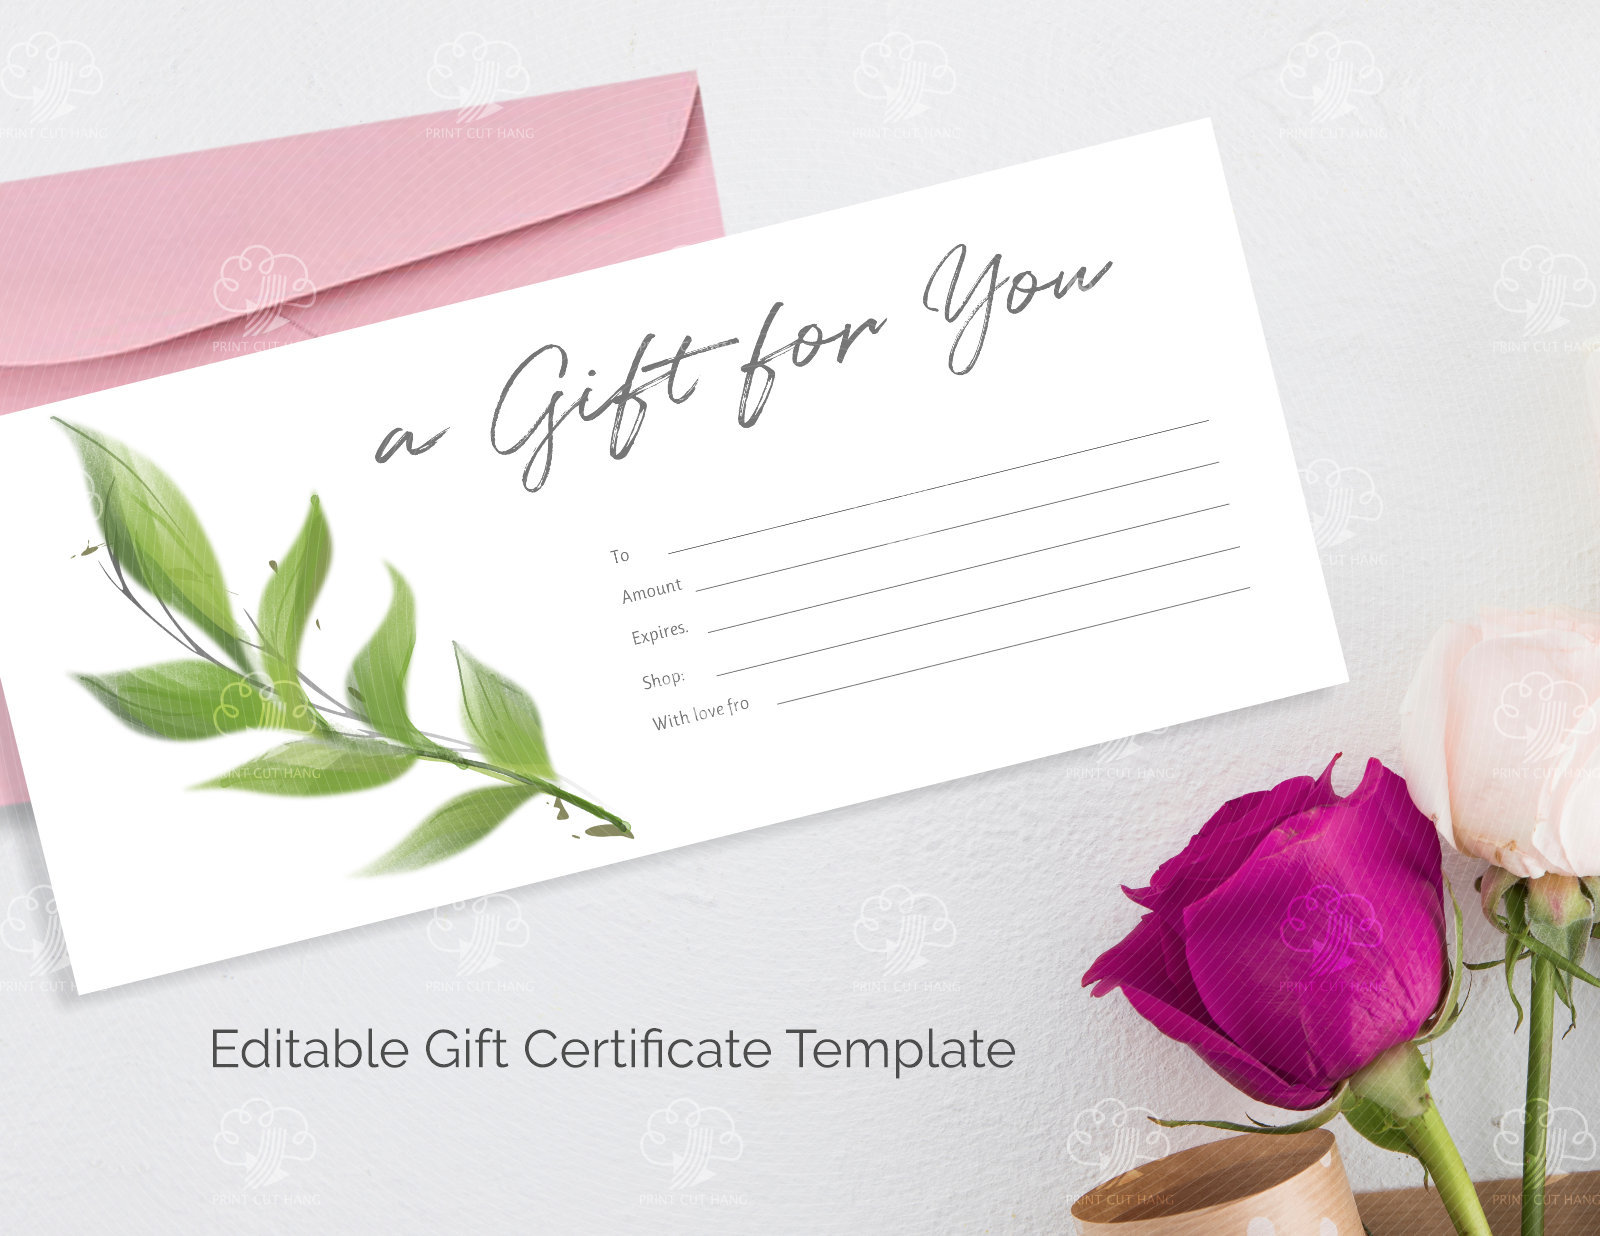 fe2857fba1e59 Editable Greenery Gift Card Certificate - Watercolor Green Leaves ...